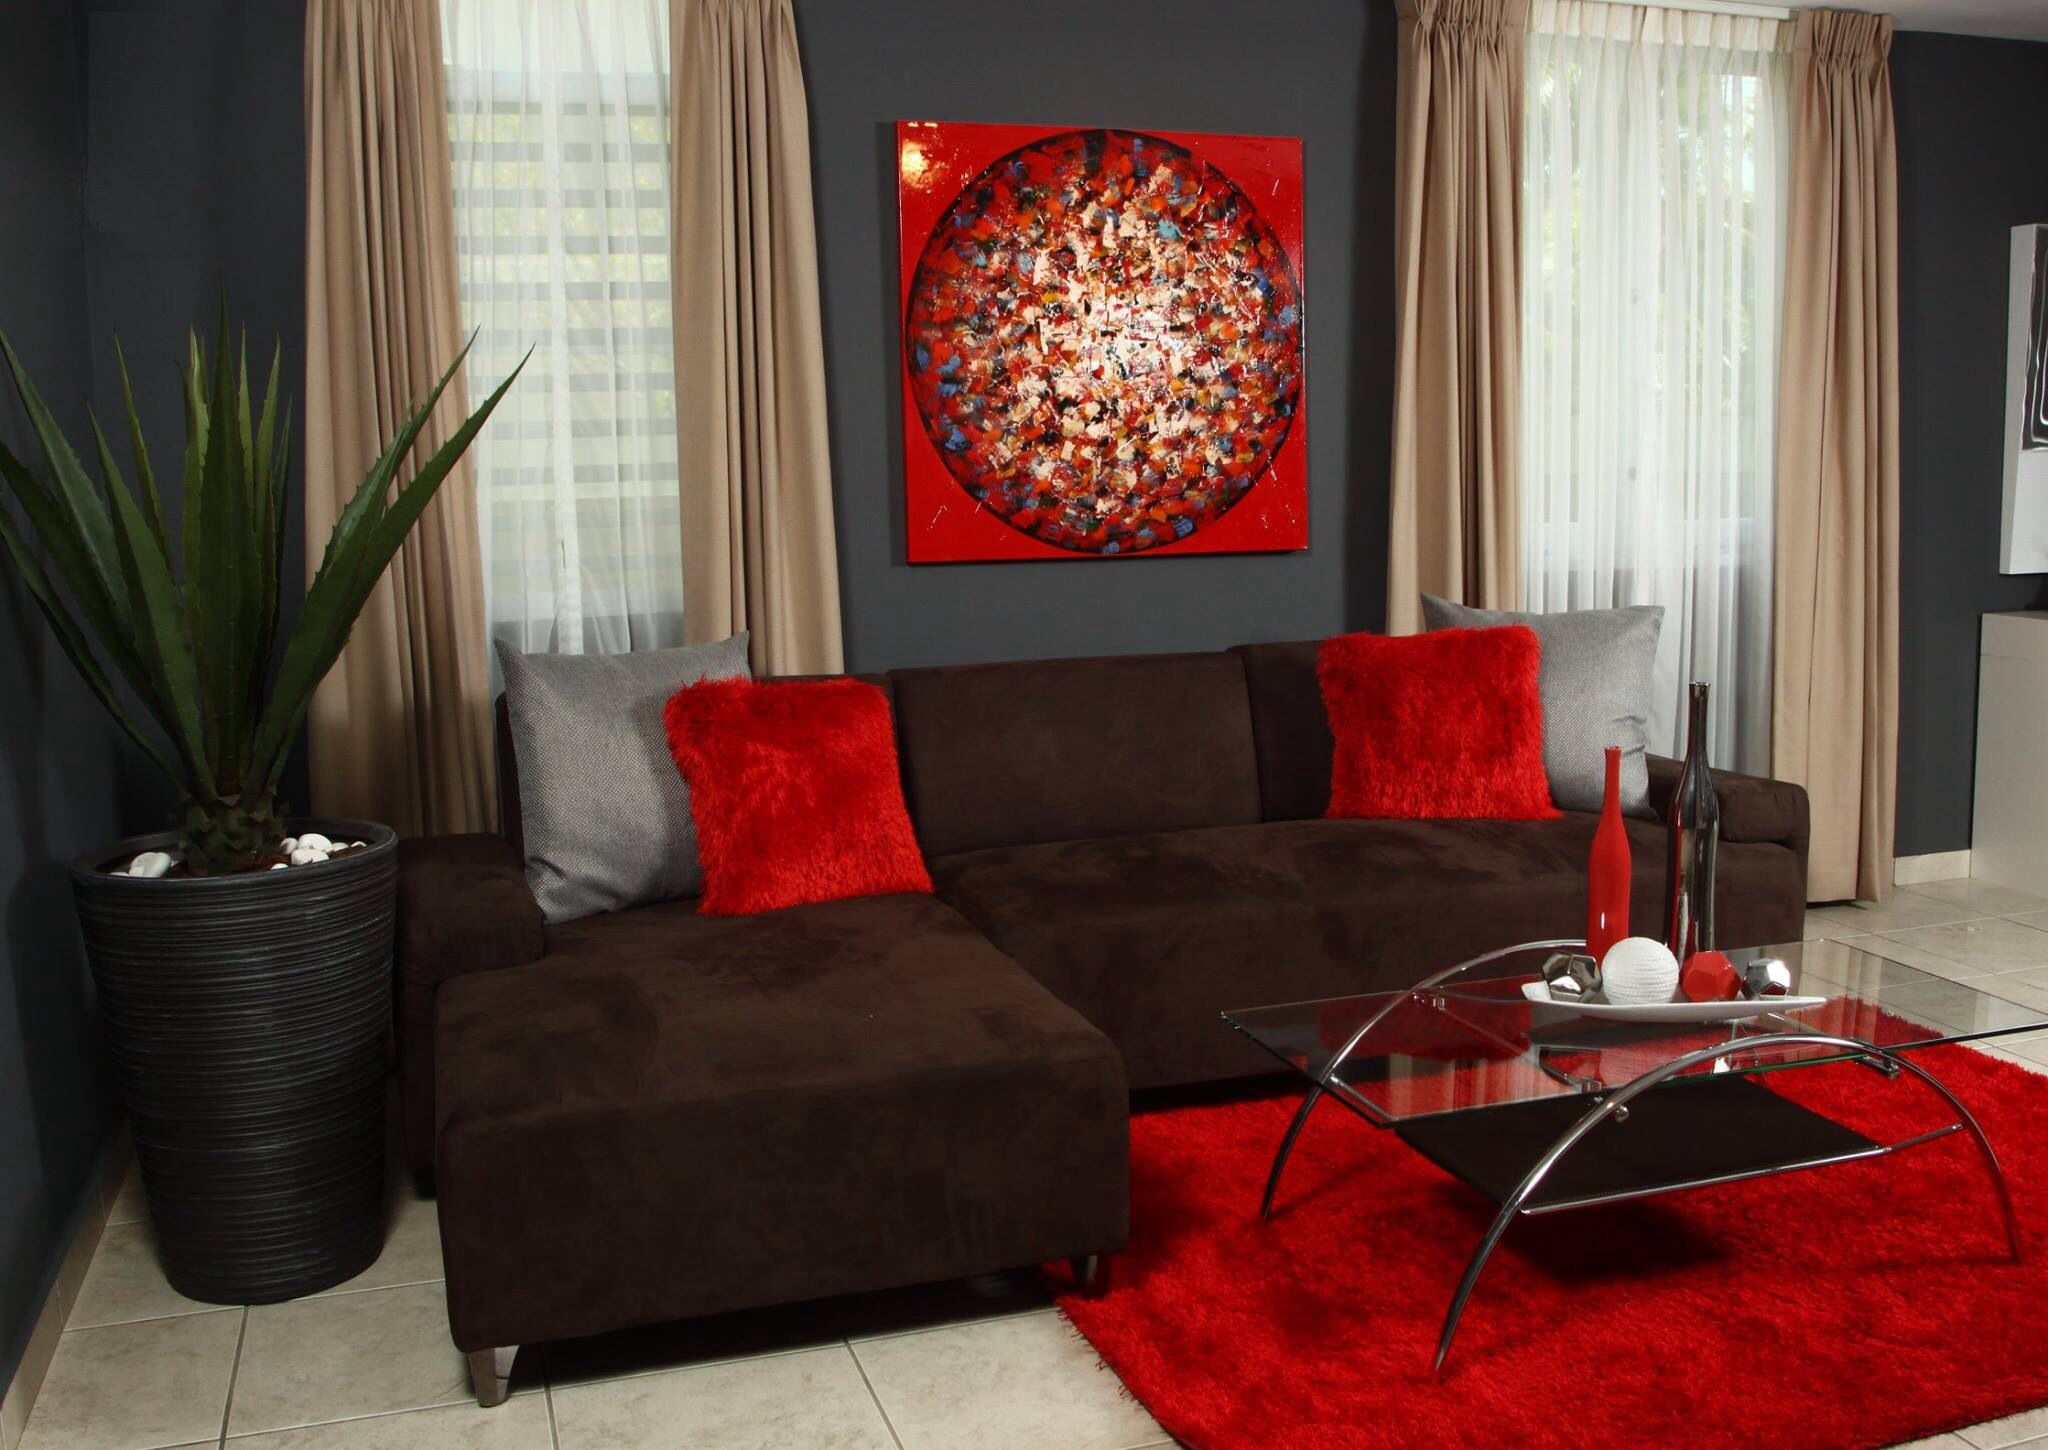 leo zodiac: pier 1 alluring mirror with red bamboo vases and